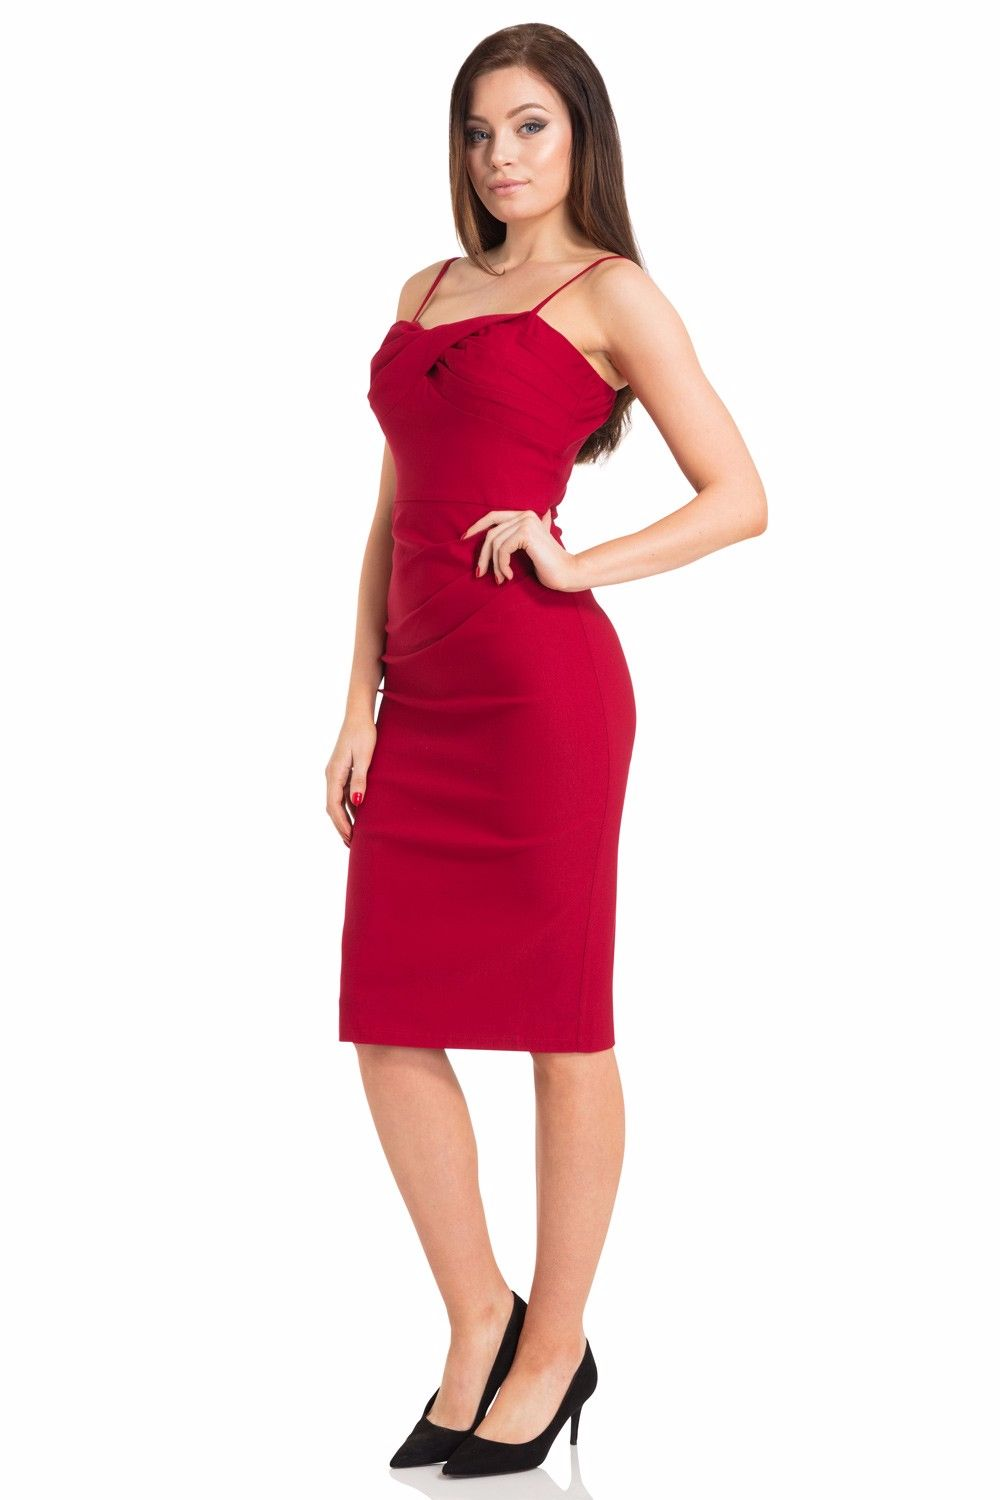 Voodoo Vixen Jayne Dress in Red